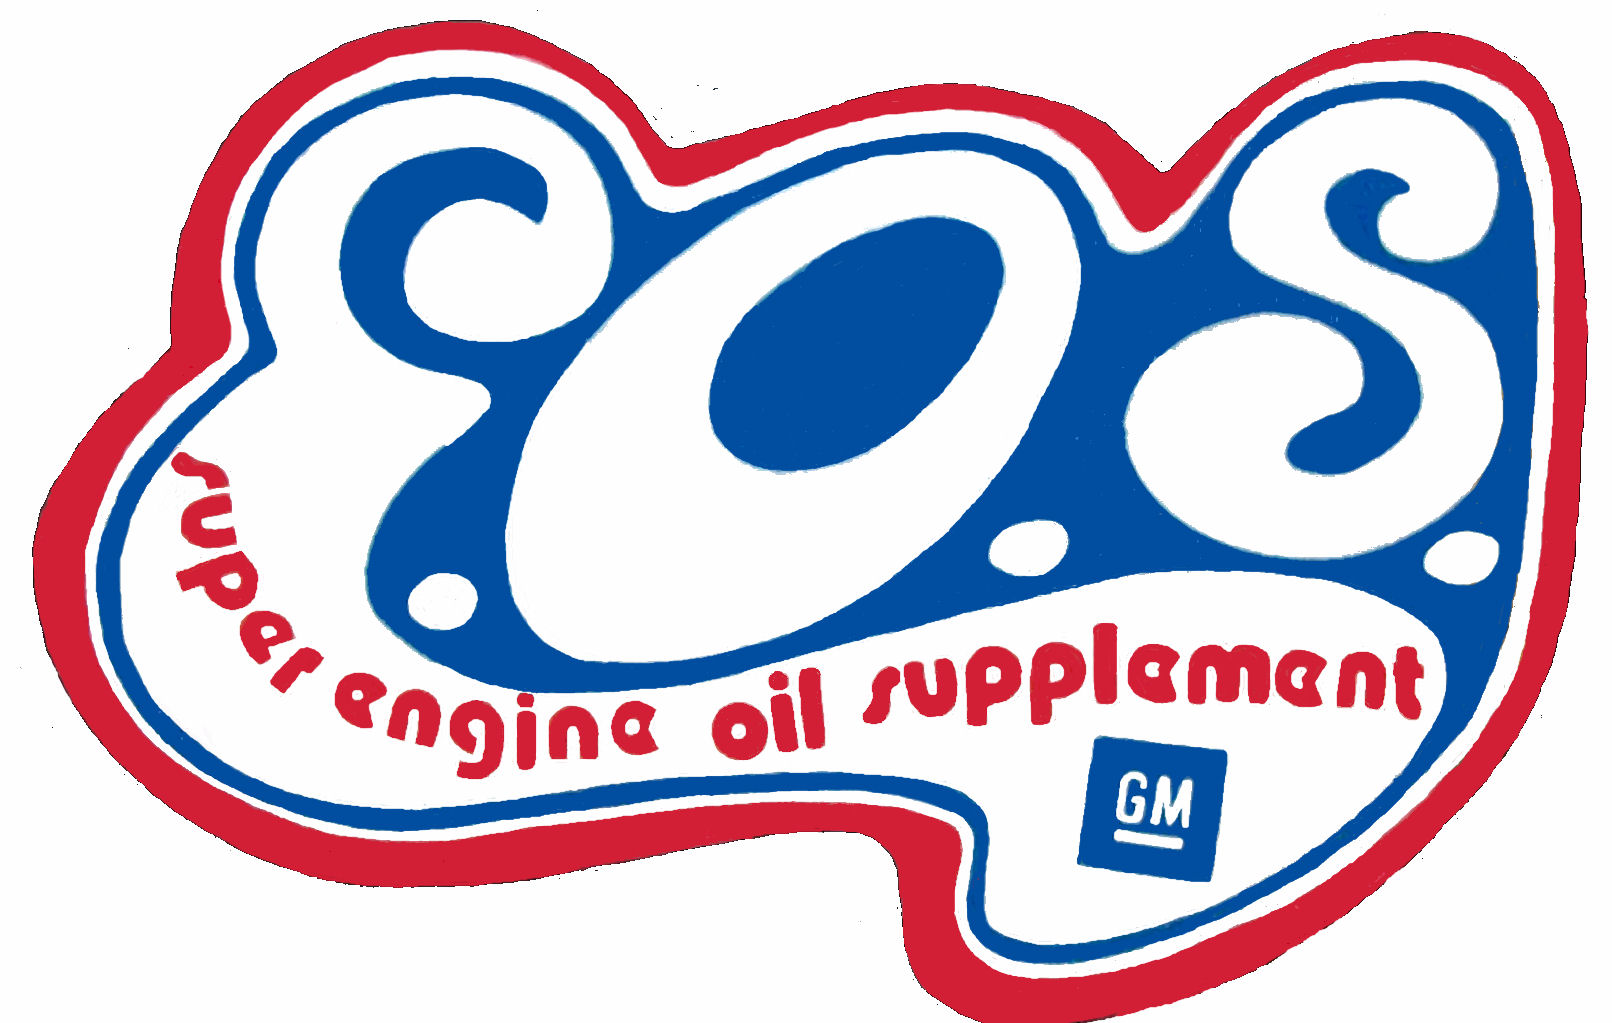 GM EOS Oil Suppliment 1950s